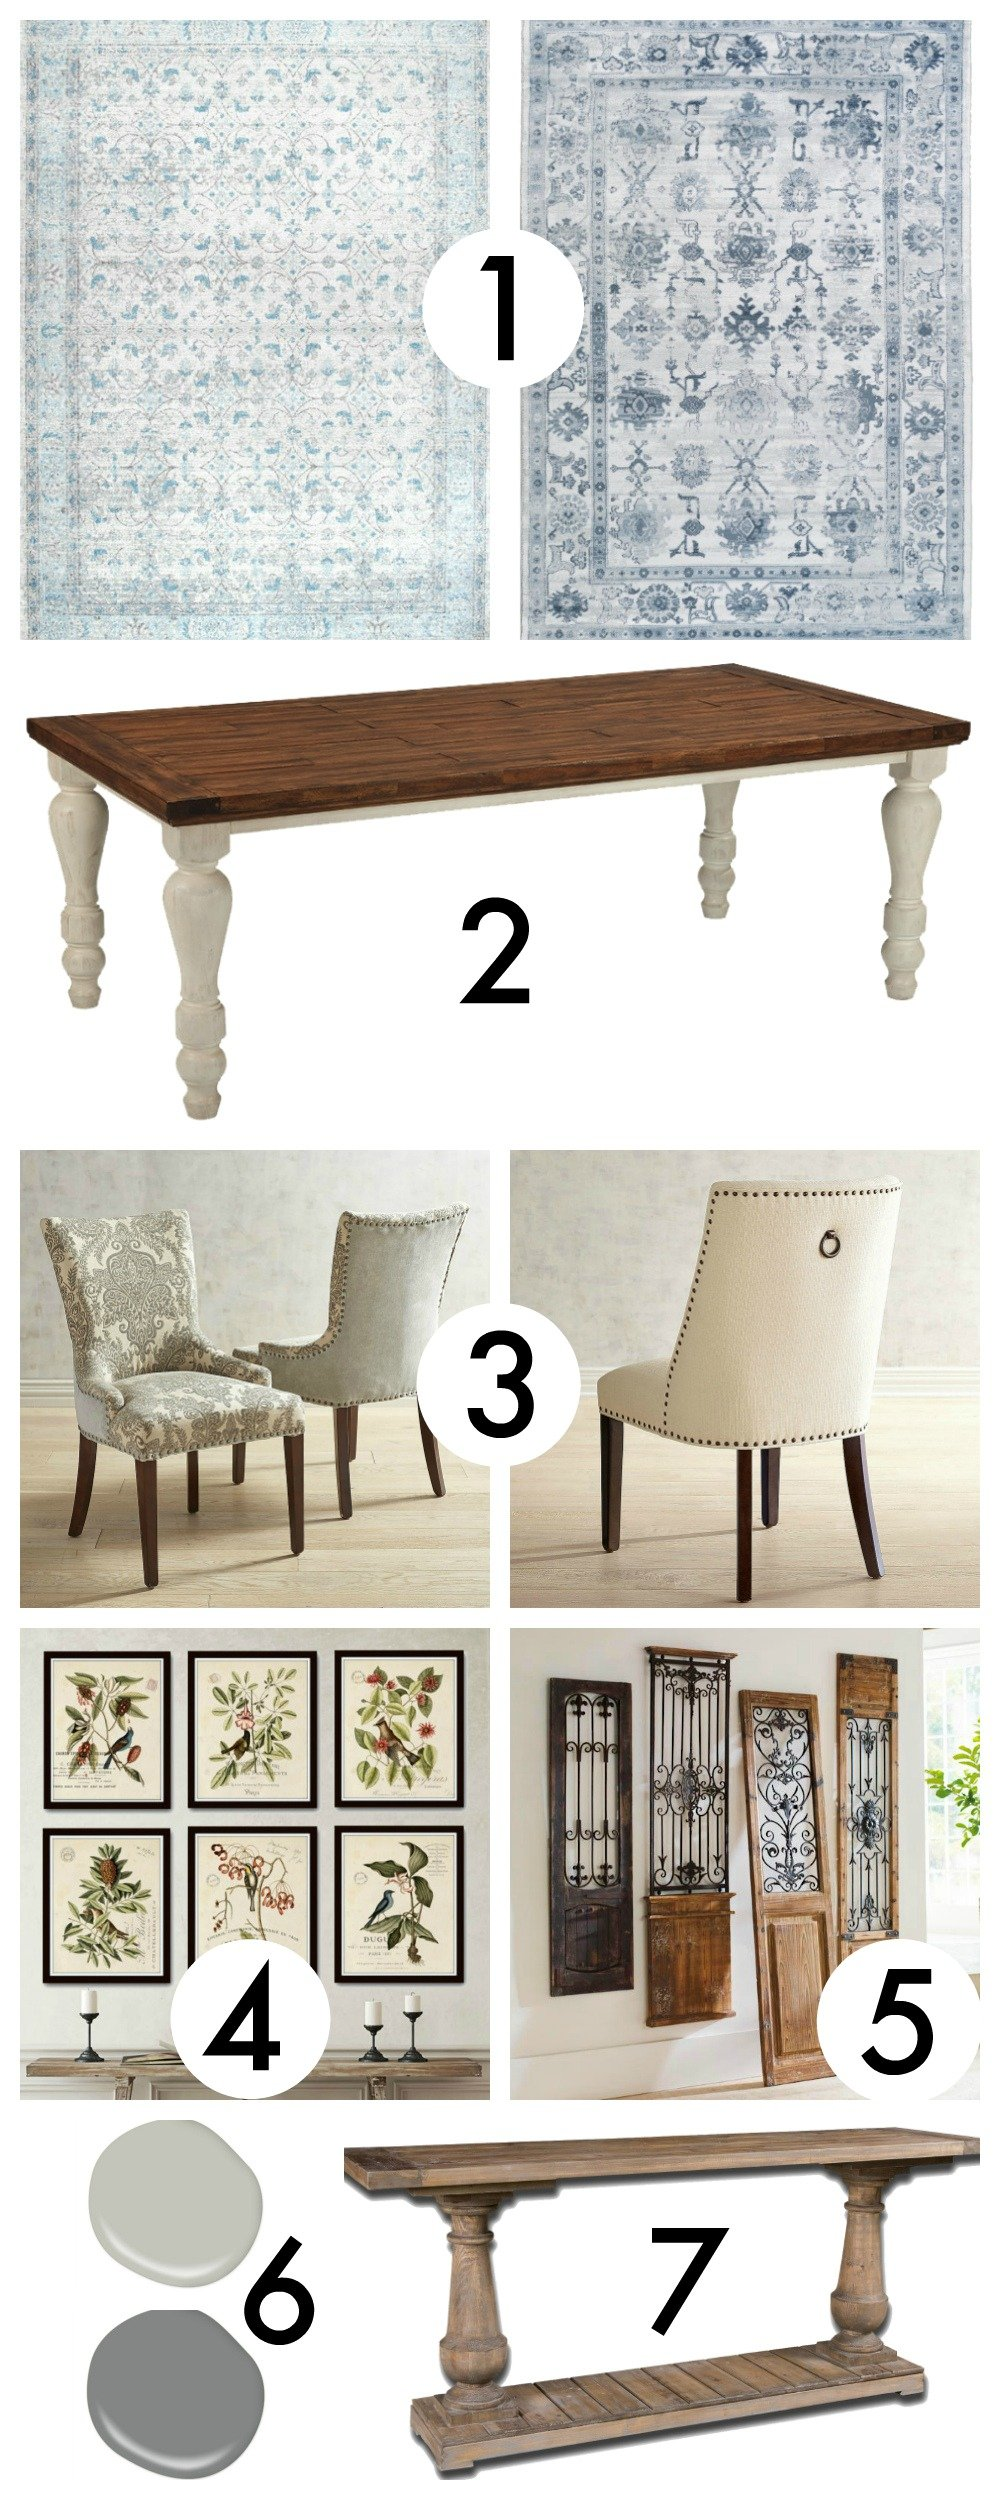 Dining Room Makeover Plan | How to create a moodboard | How to plan a room makeover | Before & After | TheNavagePatch.com